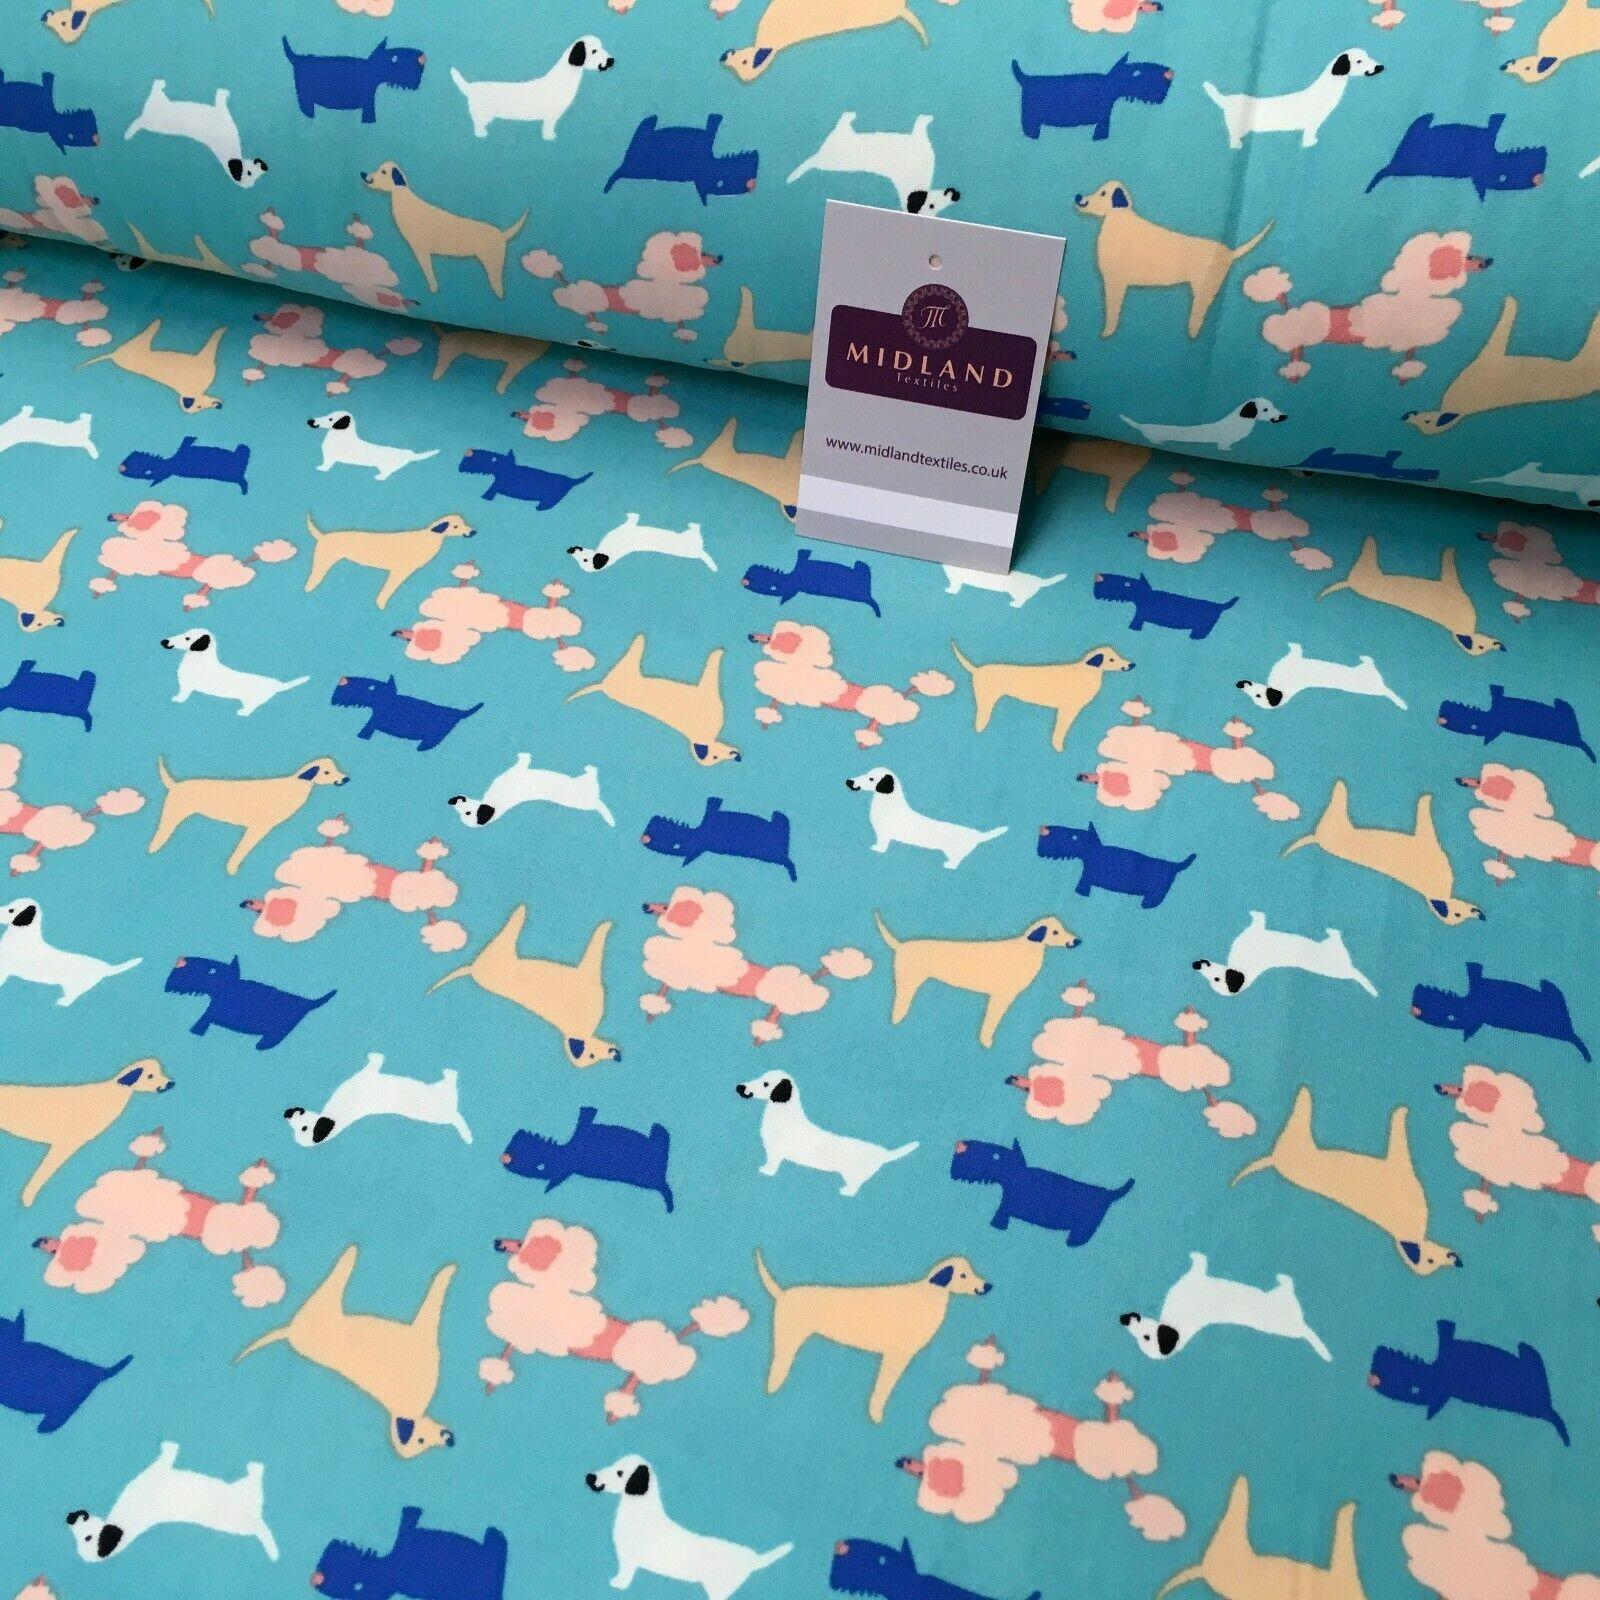 Aqua Assorted Dogs Printed Brushed Jersey Dress fabric 150cm Wide MK1106-6 Mtex